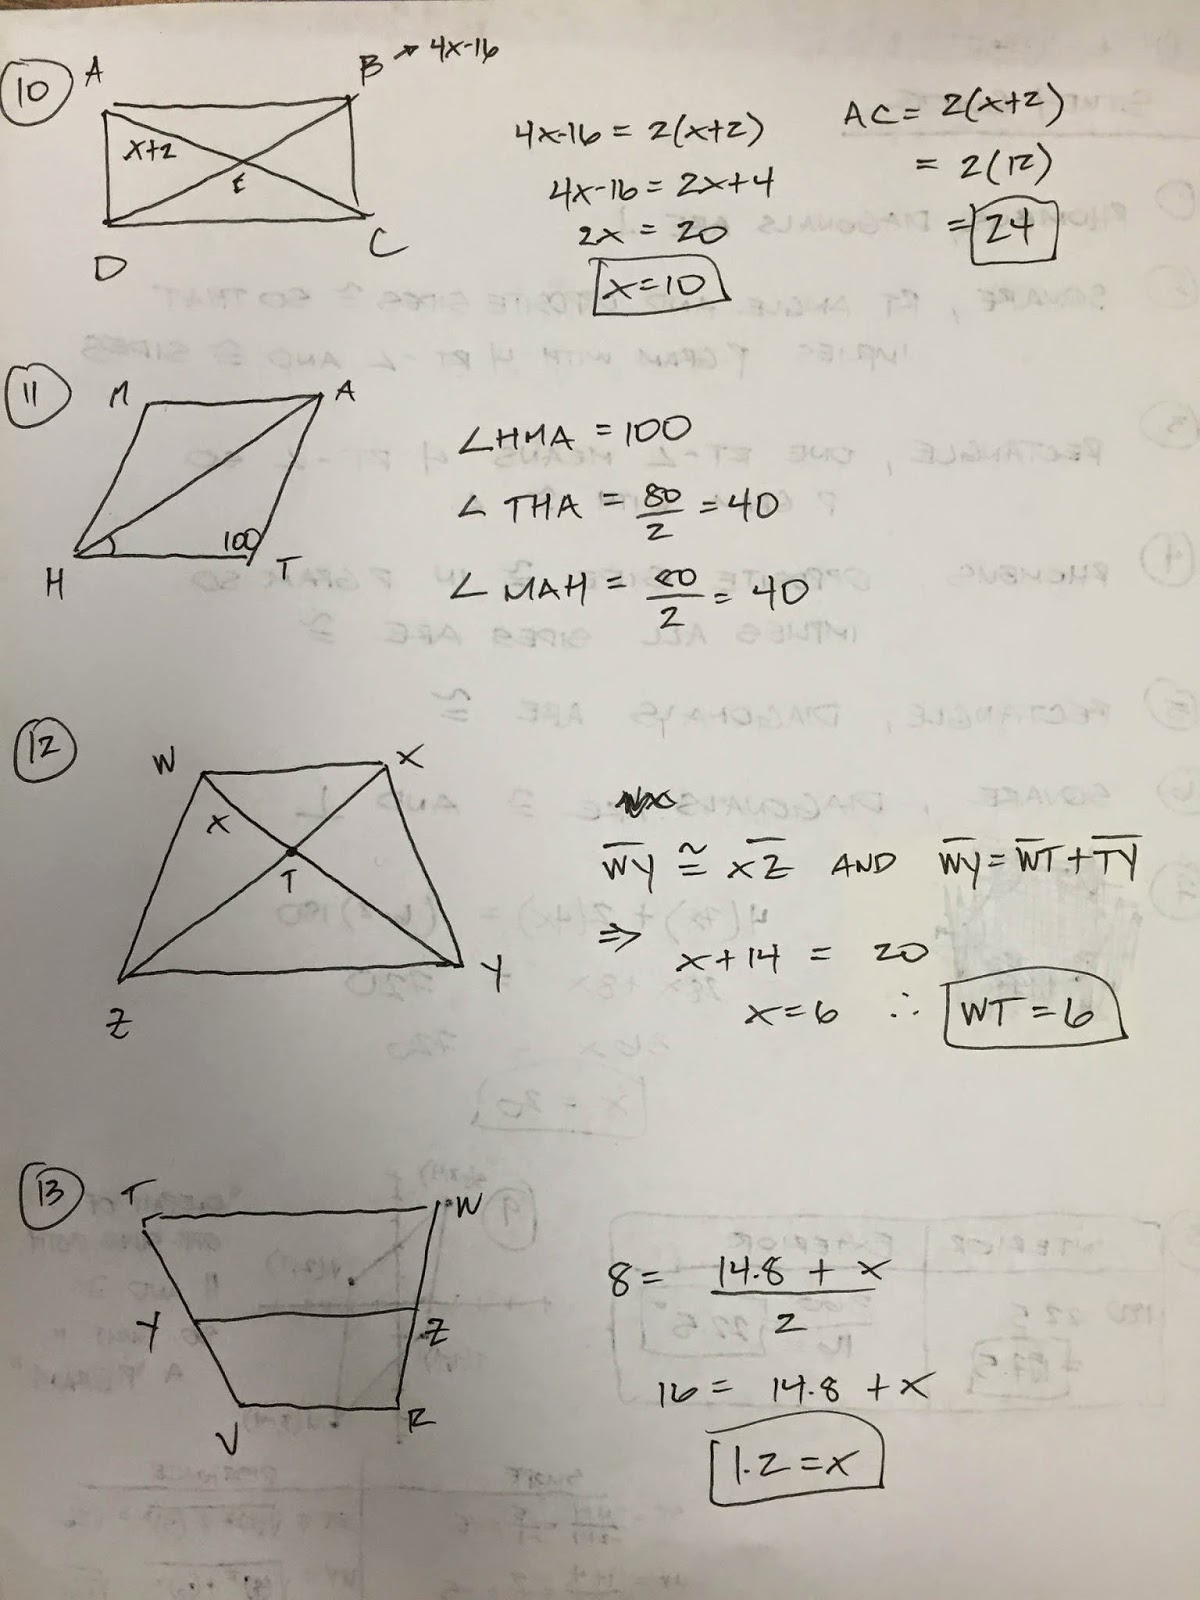 Unit 7 polygons and quadrilaterals homework 3 answer key [ 1600 x 1200 Pixel ]